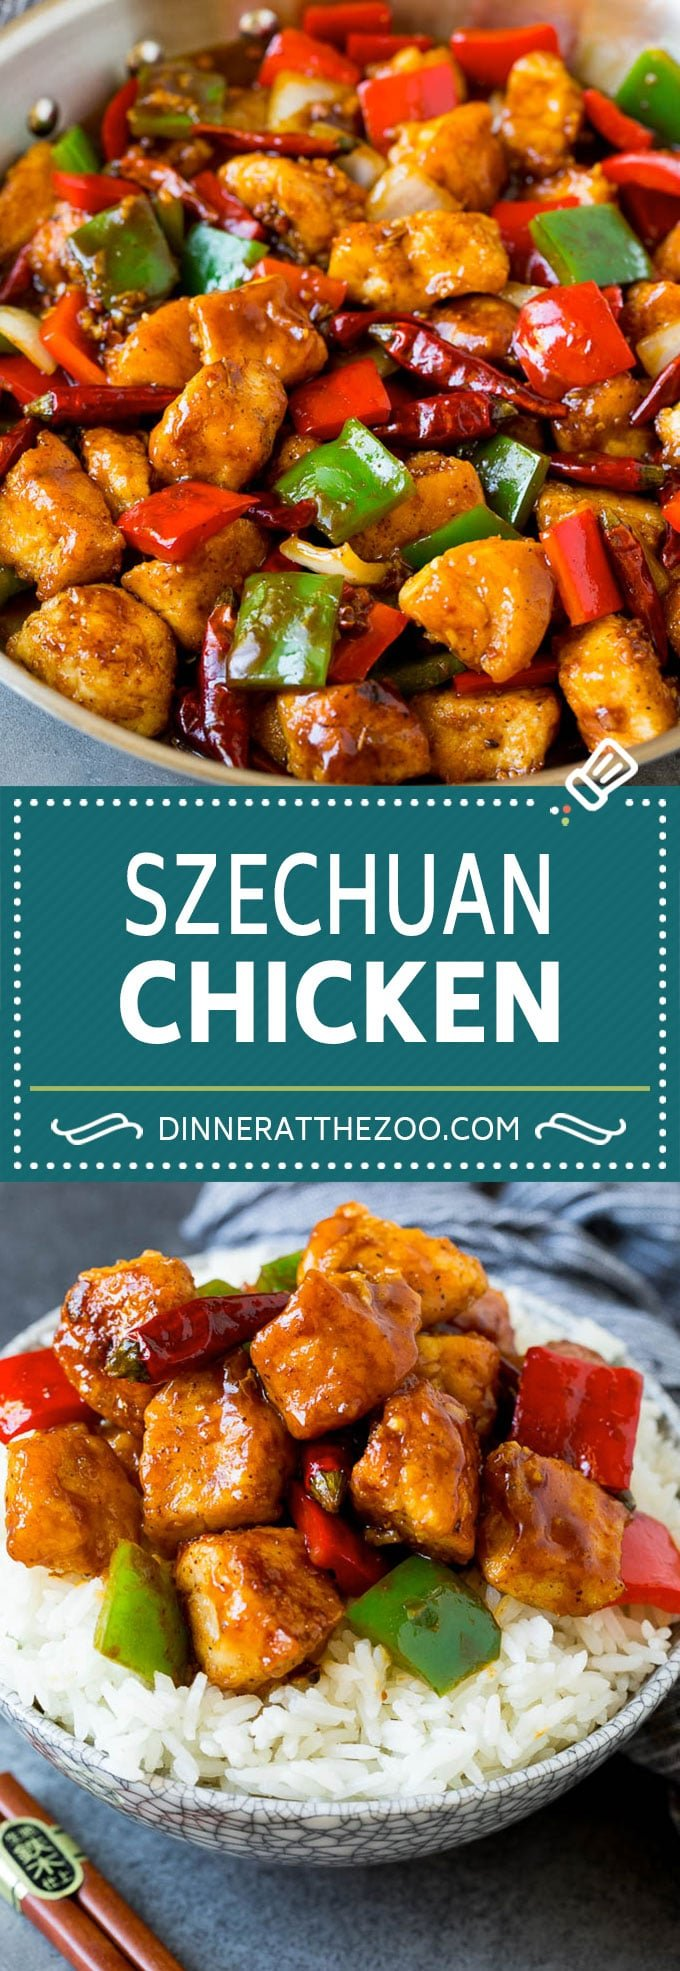 This Szechuan chicken is a spicy stir fry made with tender pieces of chicken and colorful vegetables, all tossed in a sweet and savory sauce.